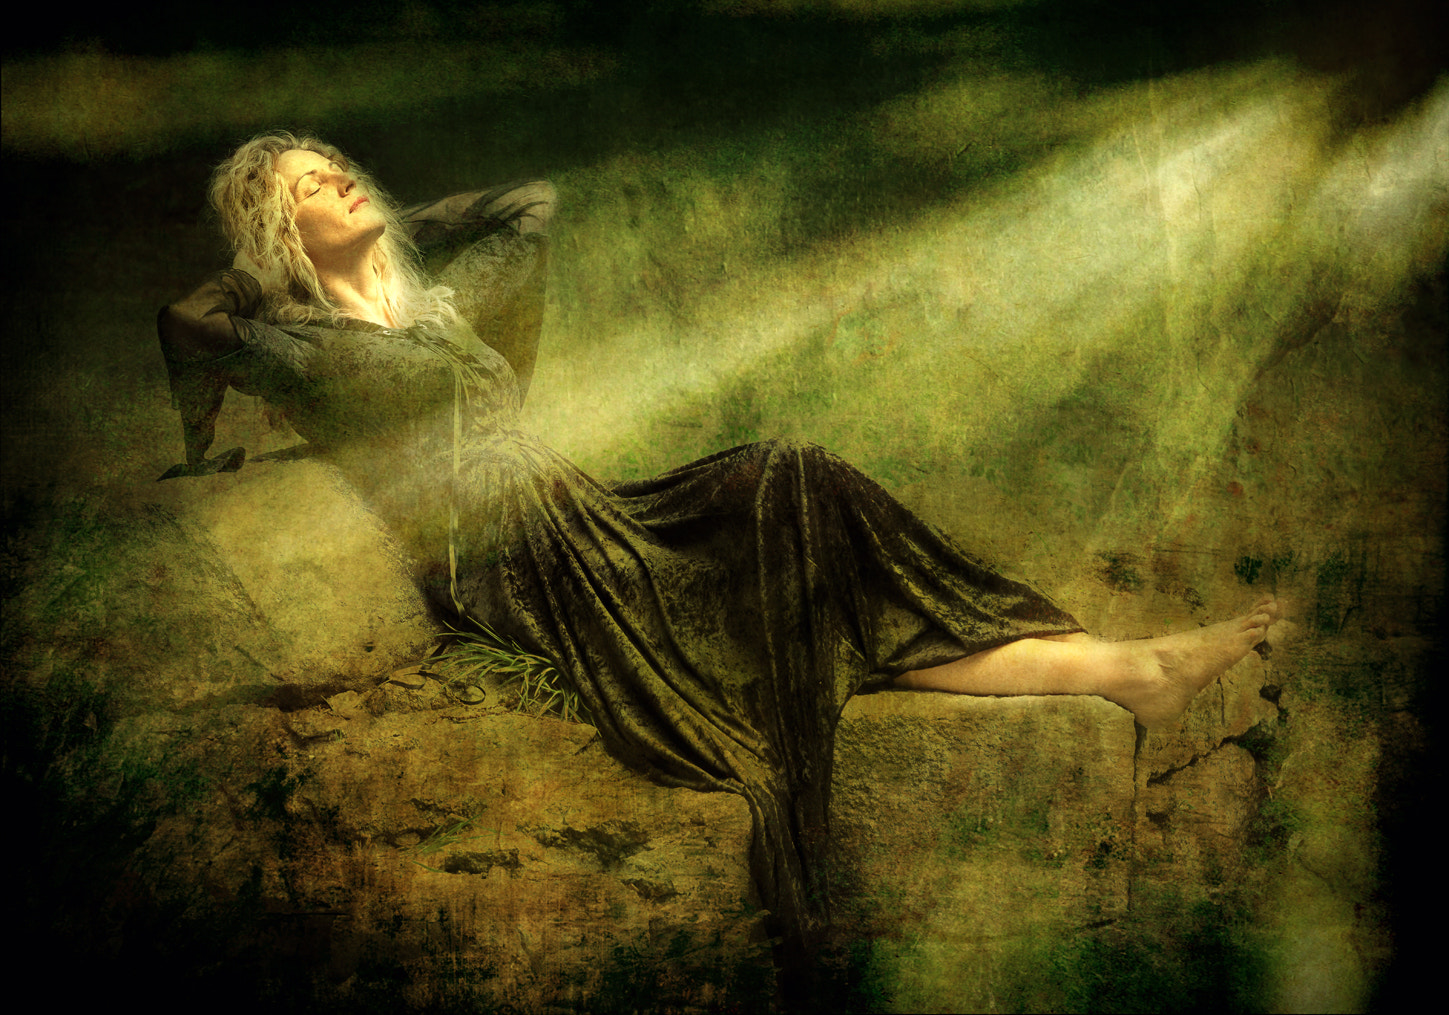 Photograph Sleeping into the light by Jean-Pierre Linossier on 500px